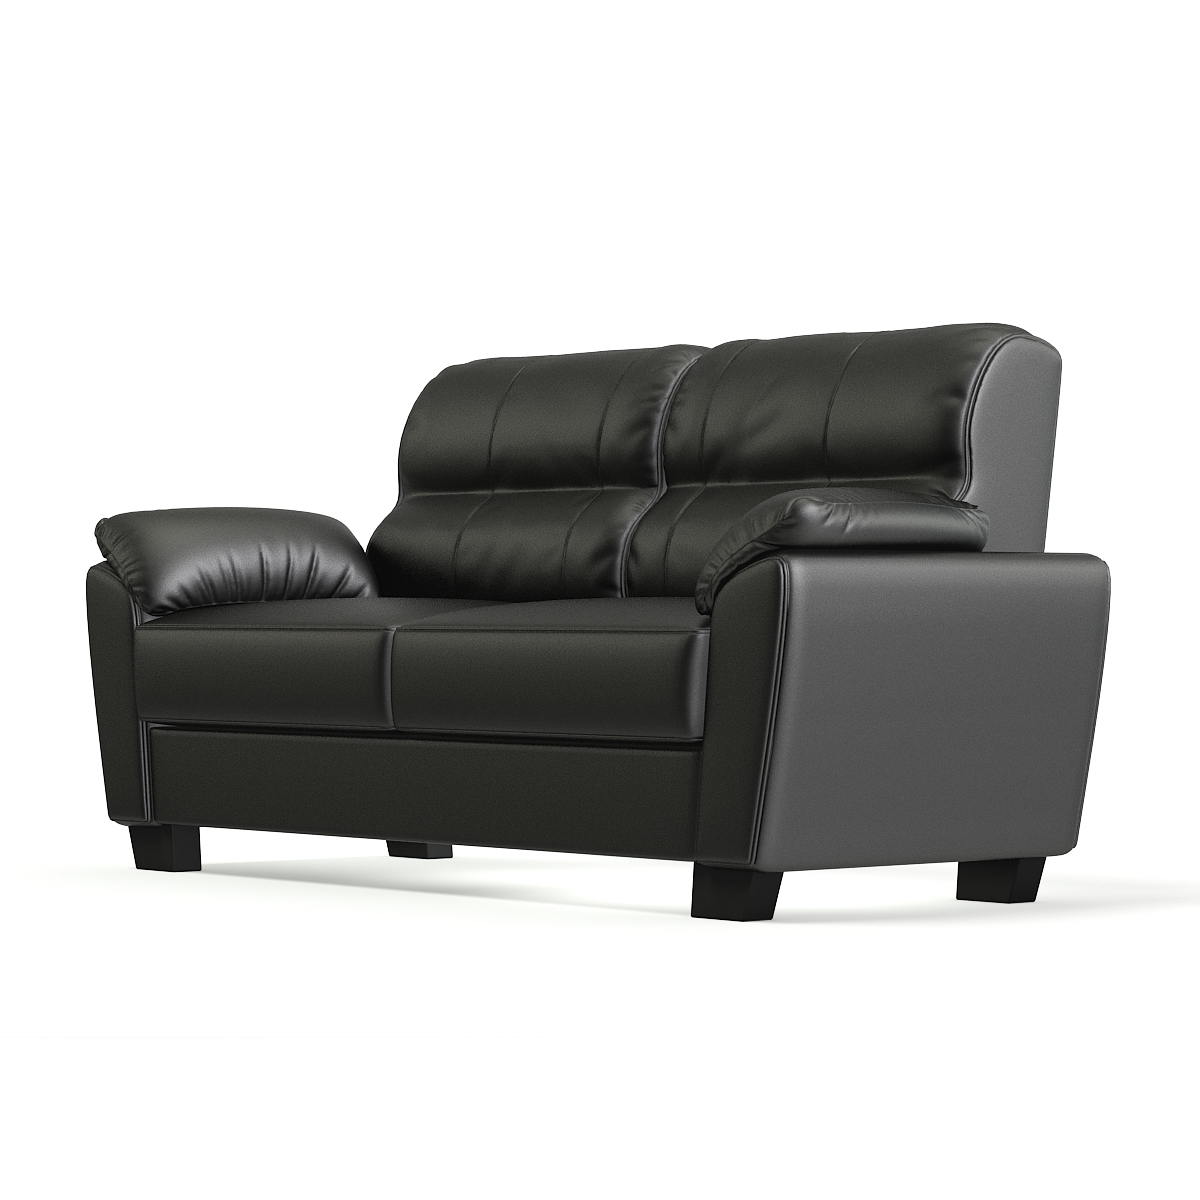 Black Leather Clic Sofa Model